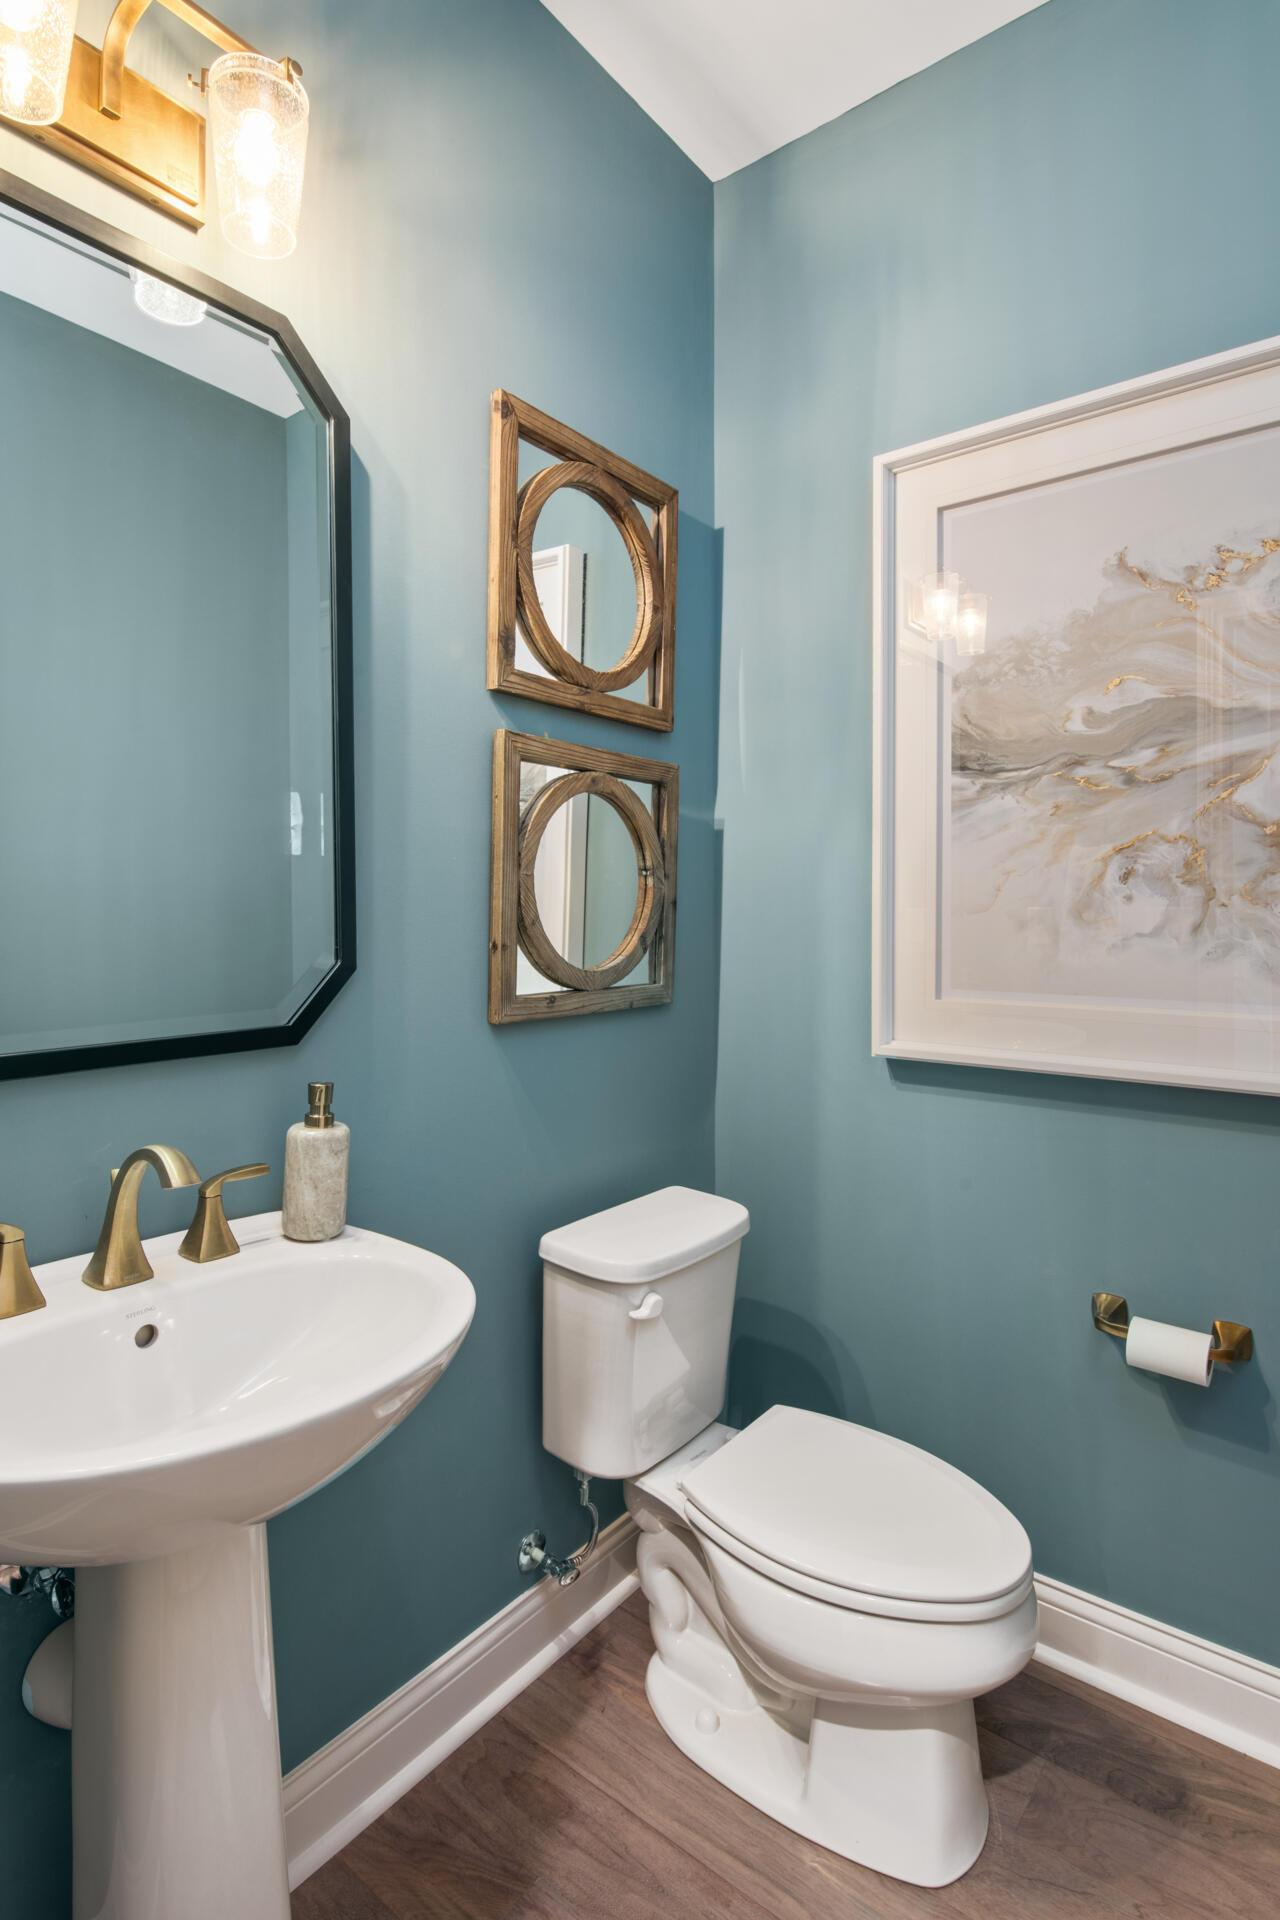 Bathroom featured in the Lyndhurst By Drees Homes in Cleveland, OH